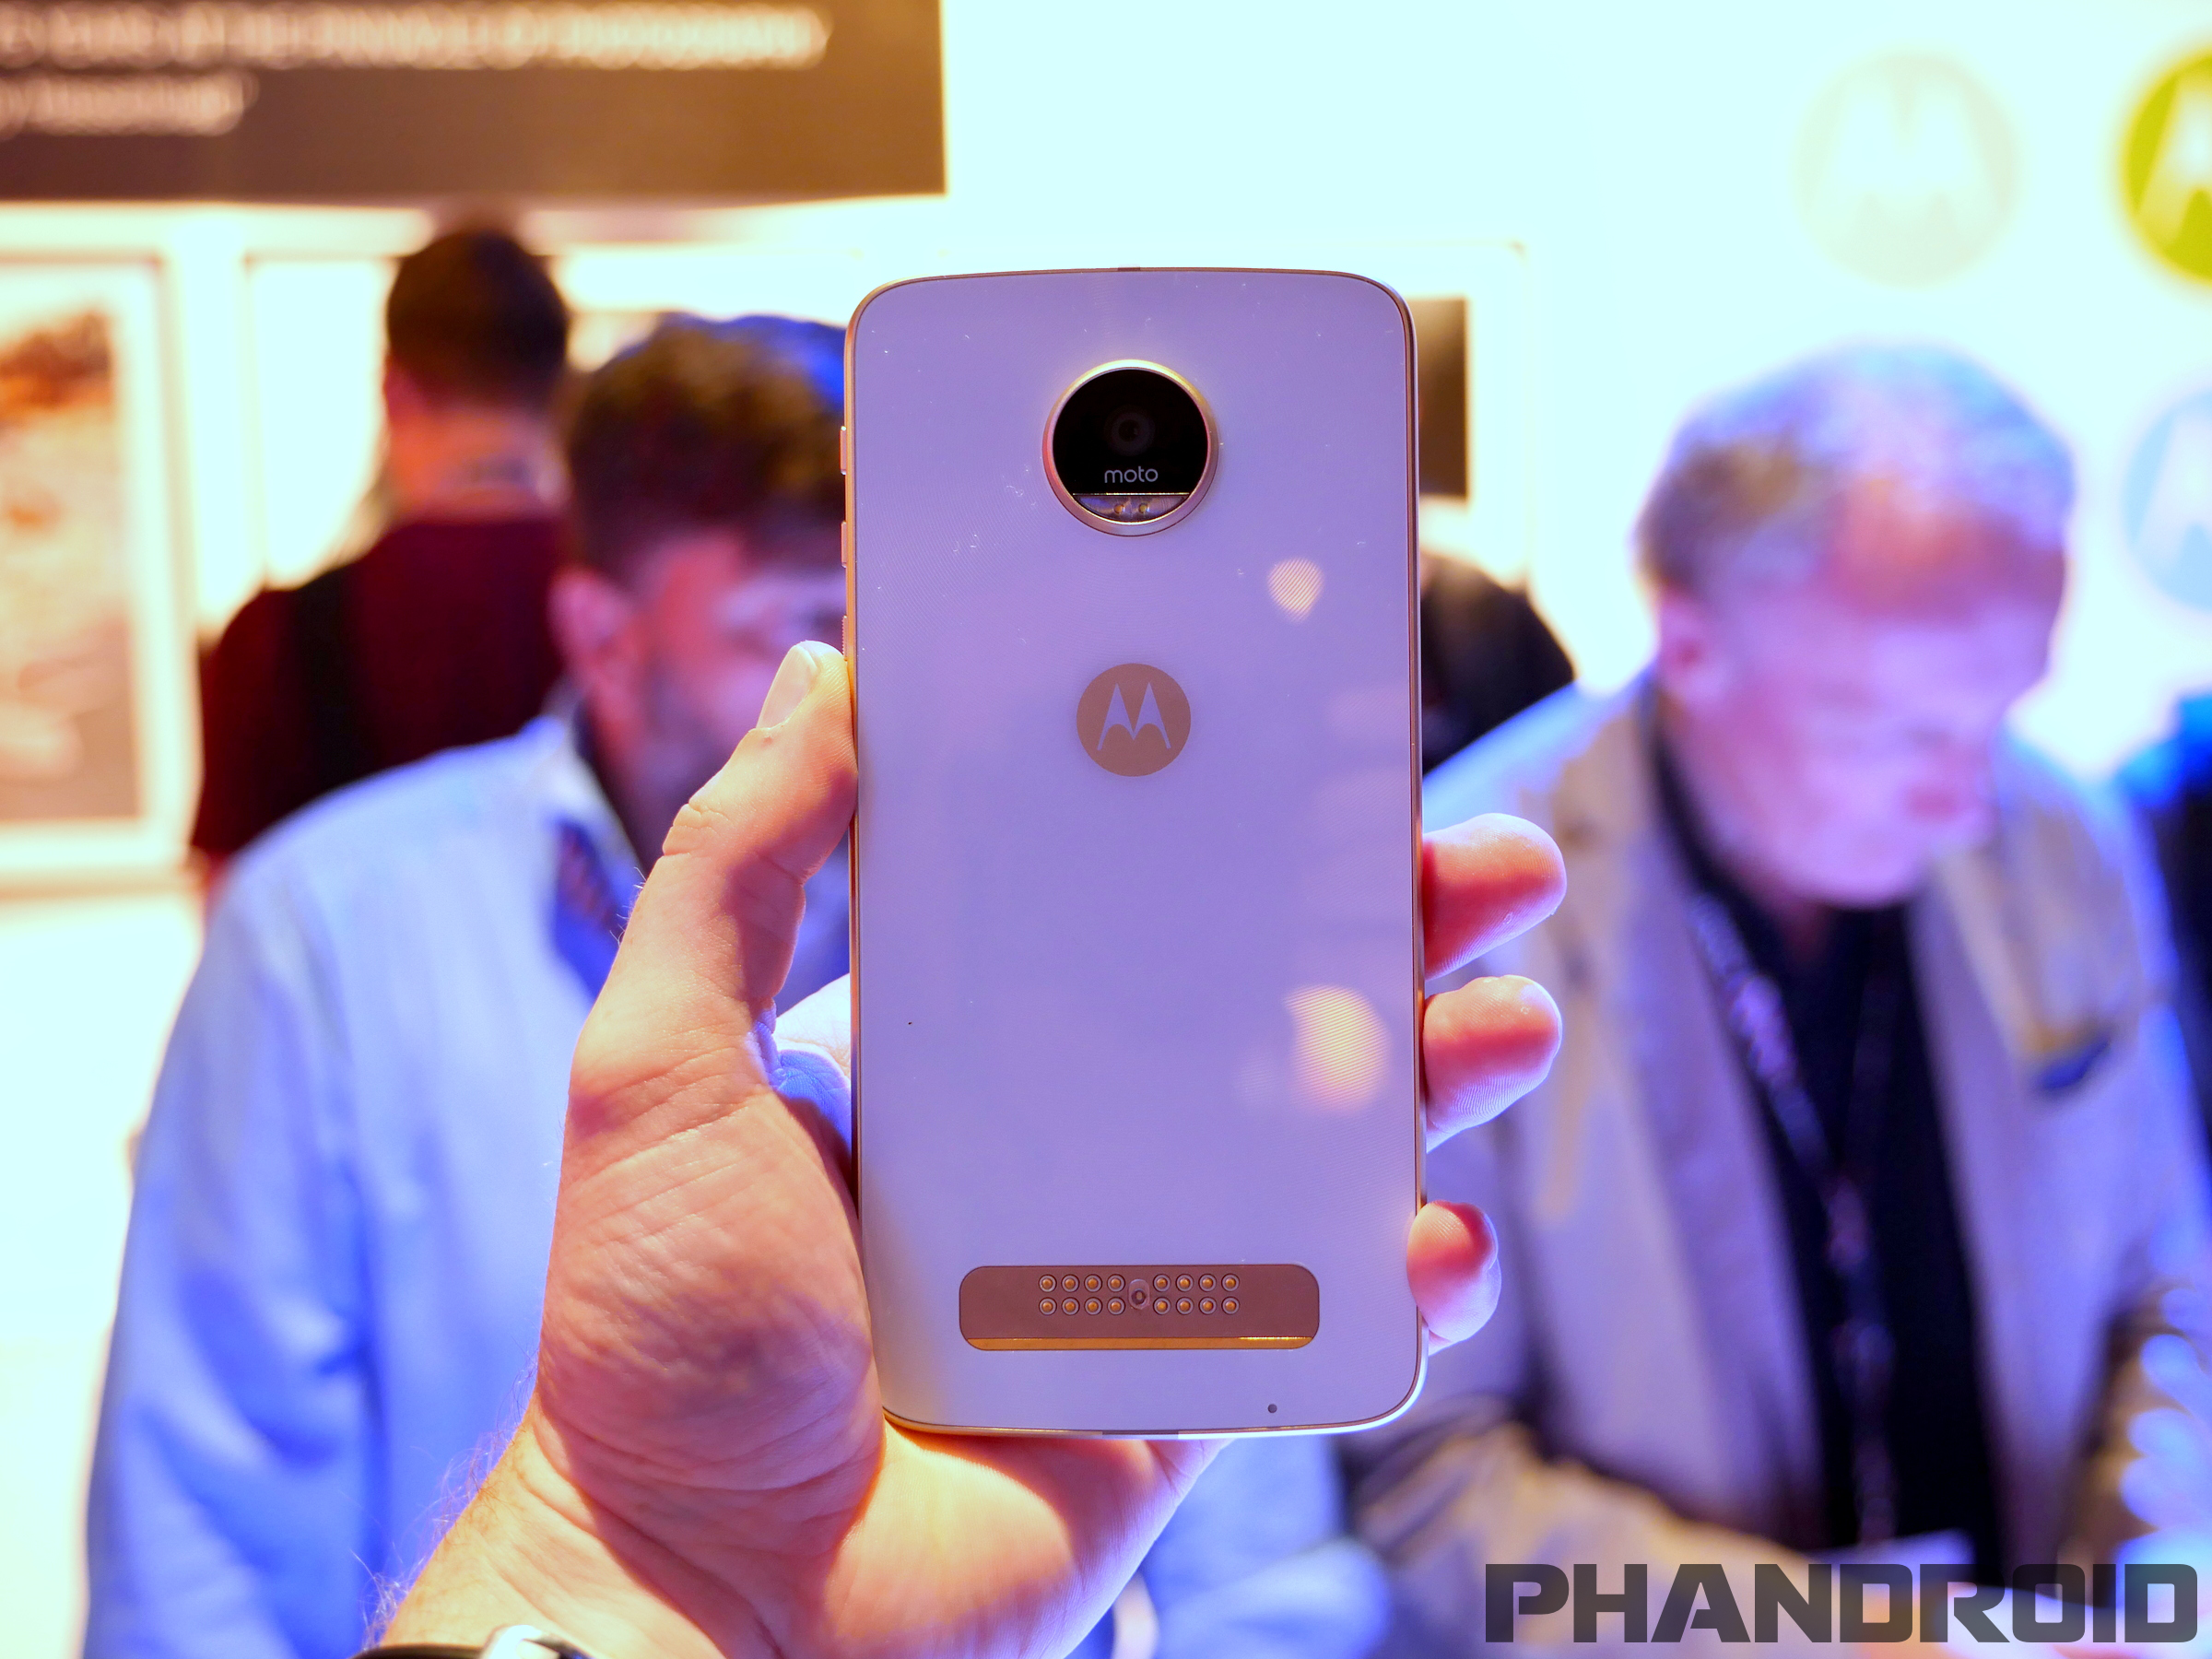 Moto Z Play with octa-core processor launched at IFA 2016